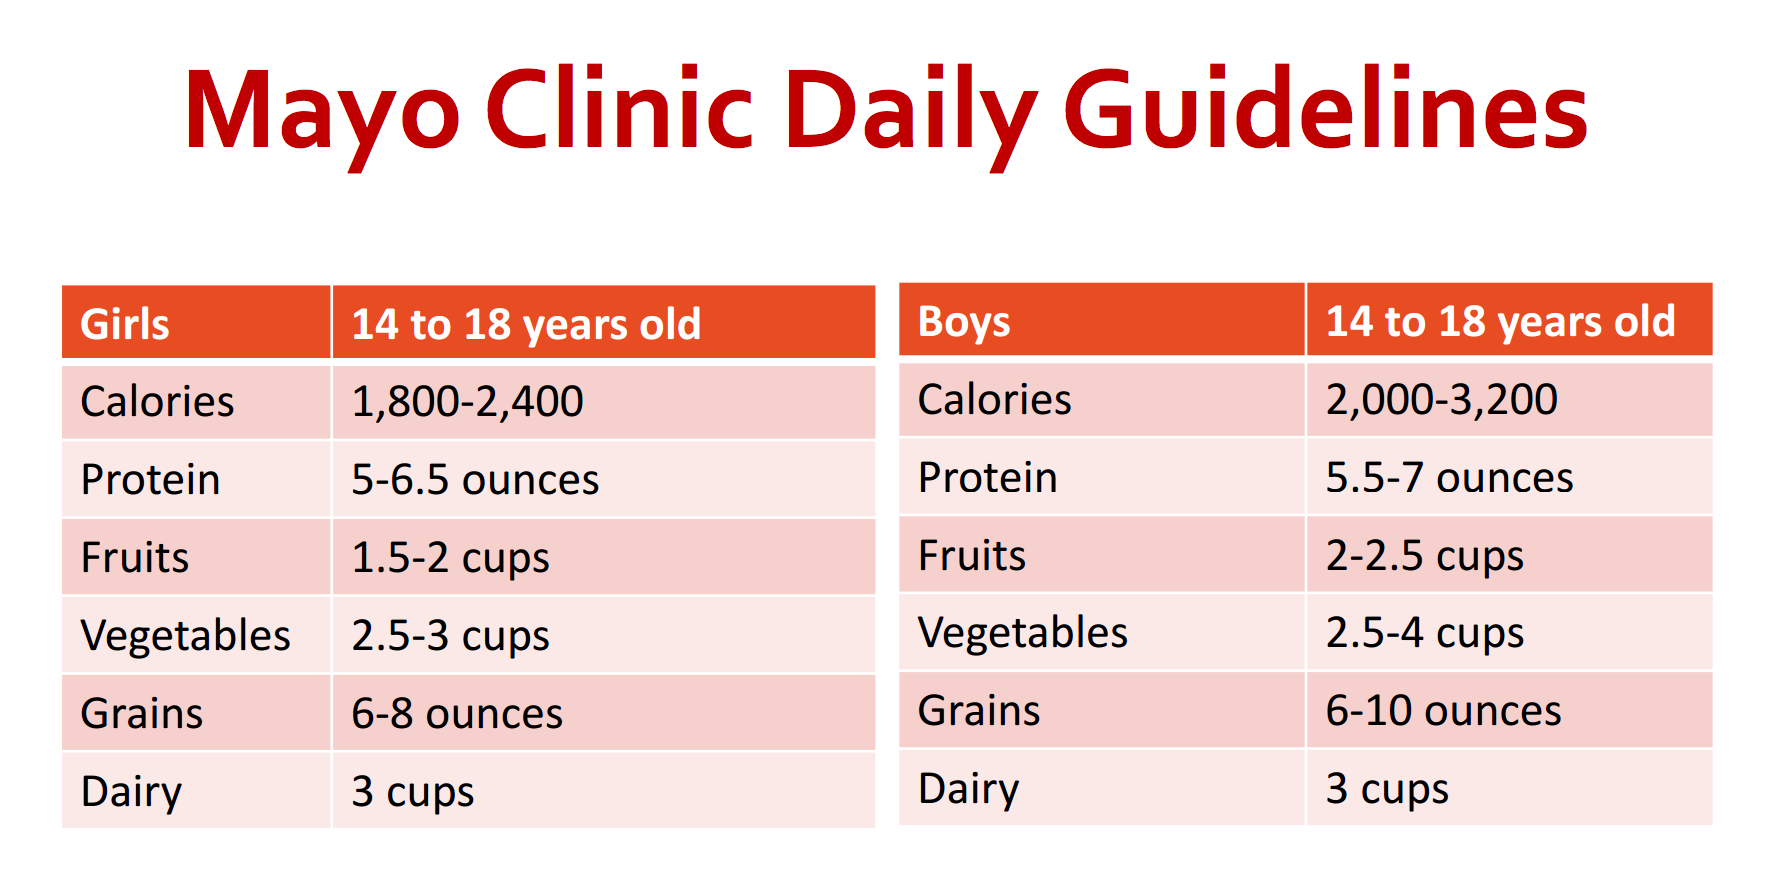 Mayo Clinic Daily Guidelines for Teens